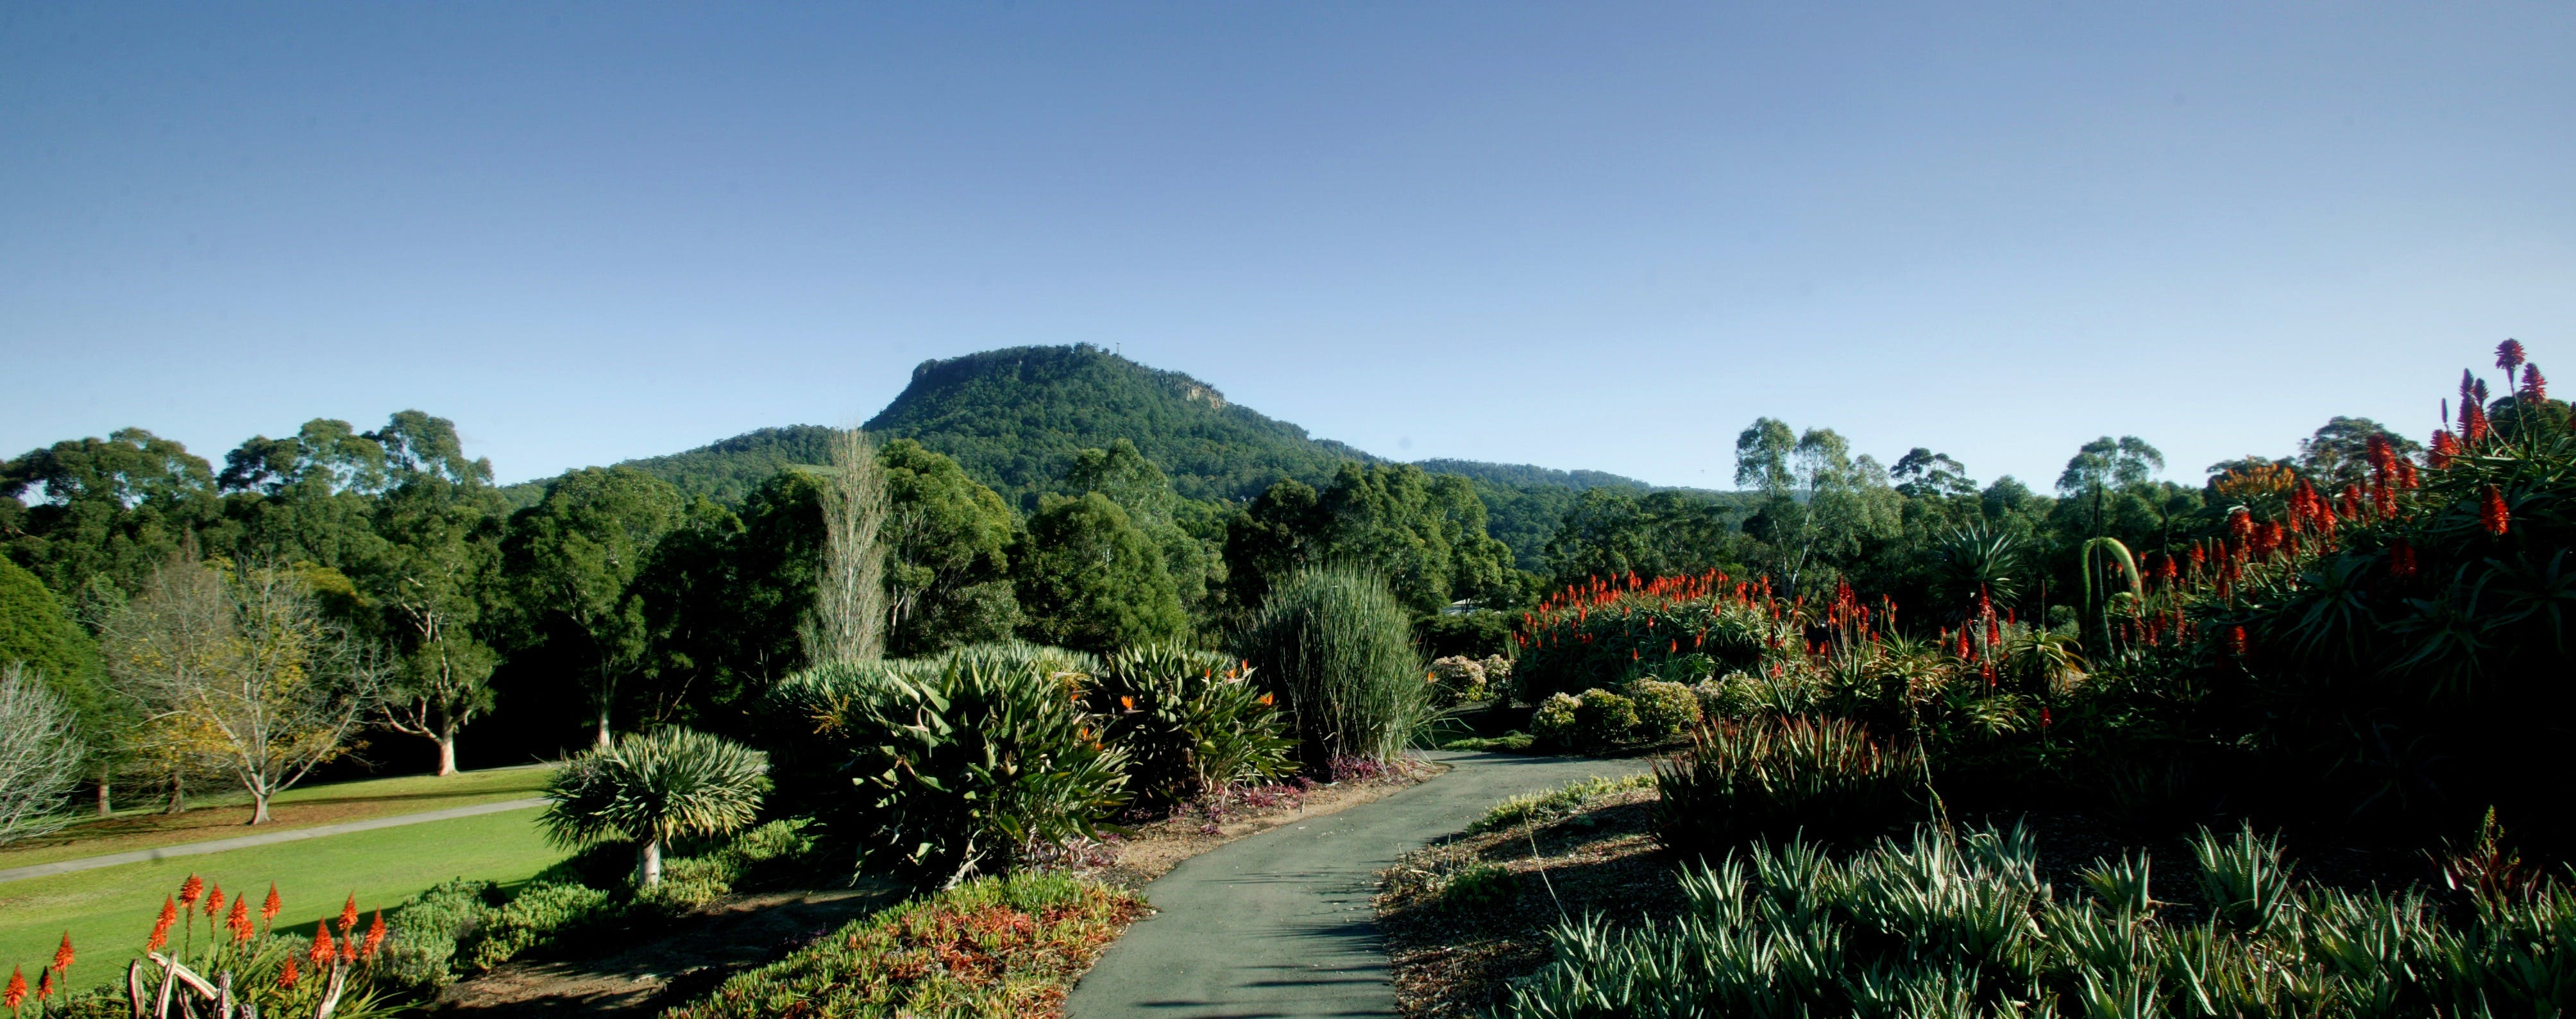 Botanic Garden Wollongong - Wagga Wagga Accommodation